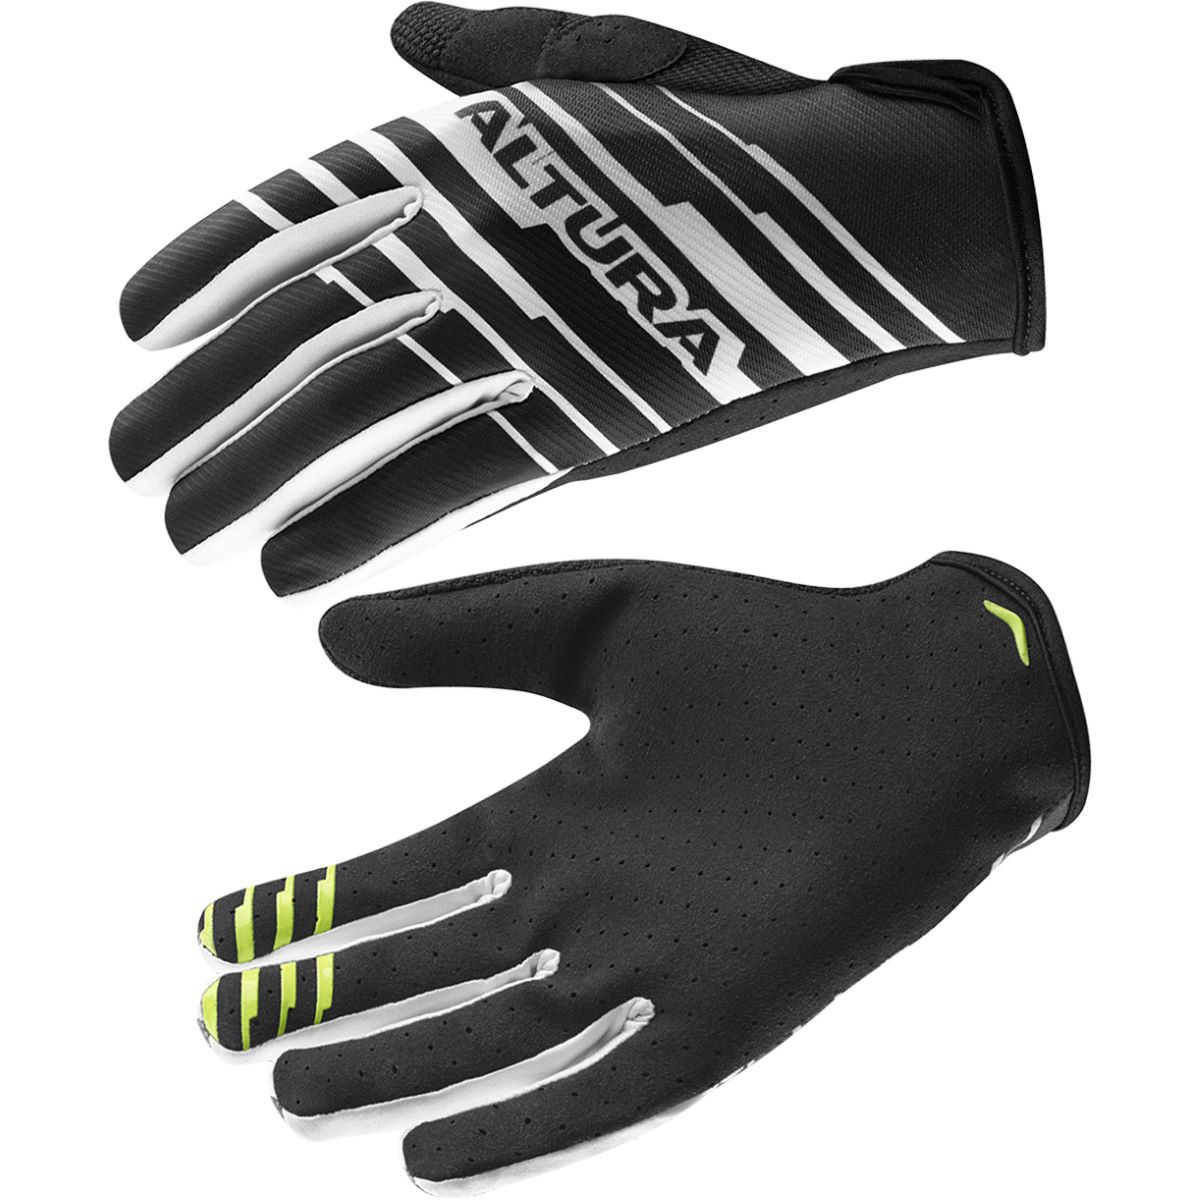 Altura One\80 G2 Gloves - L Black - White | Long Finger Gloves